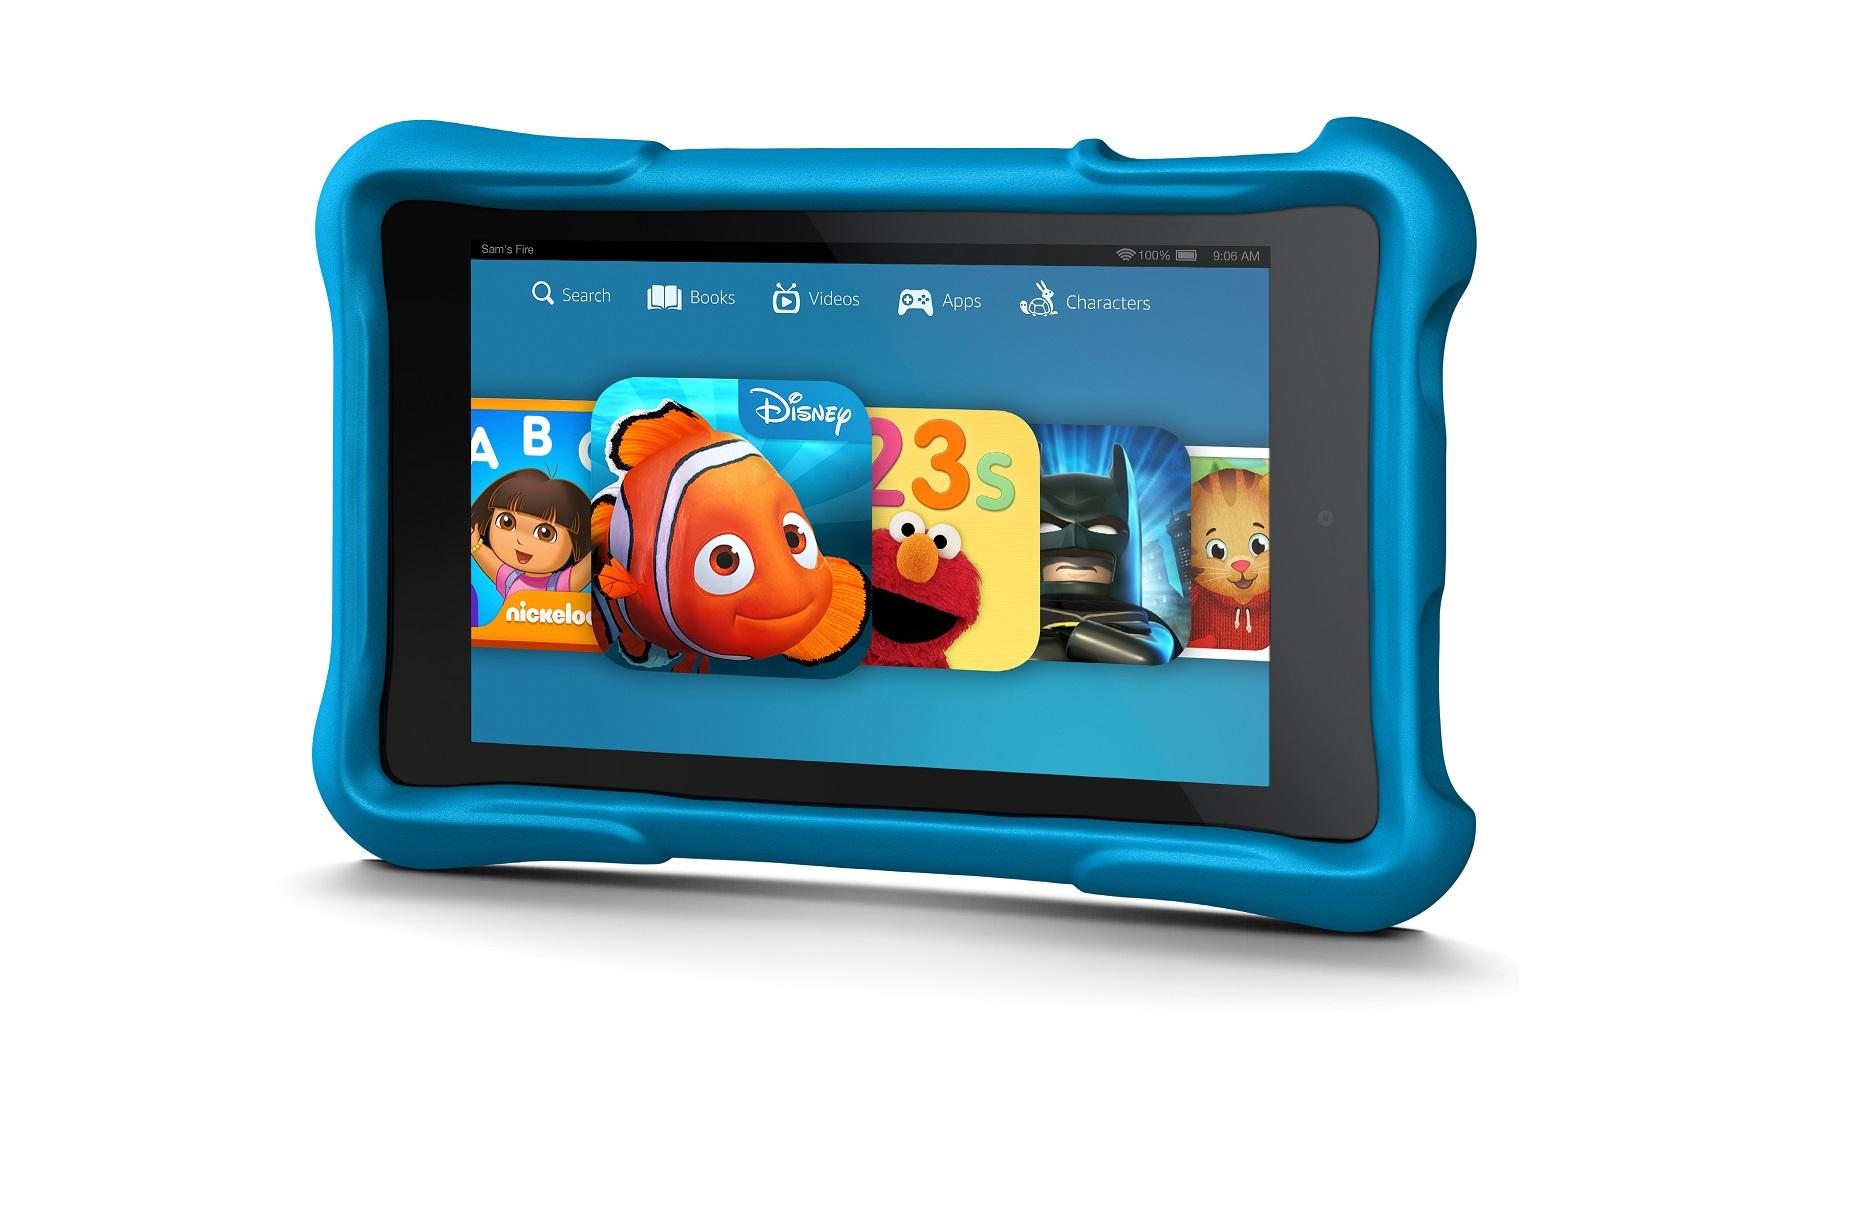 Amazon's Fire HD Kids Edition: rubber bumpers, free